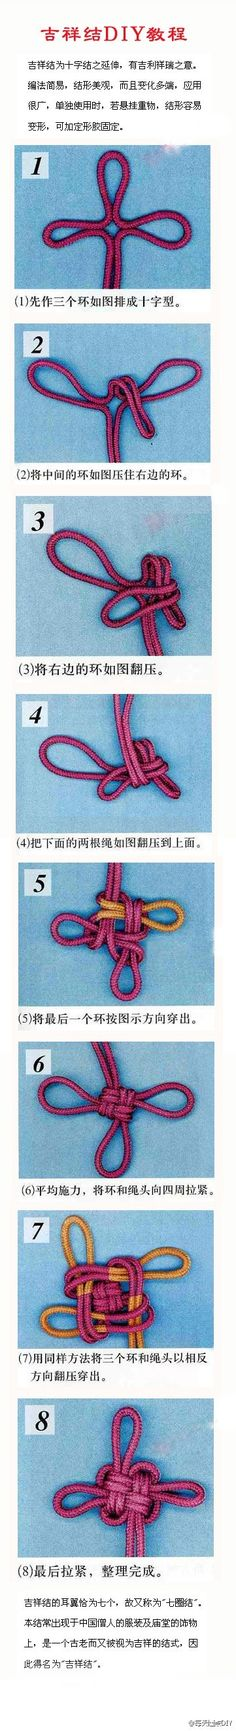 Chinese knot tutorial step-by-step pictures instructions in Chinese Macrame Knots, Micro Macrame, Knot Cushion, Diy And Crafts, Arts And Crafts, Paracord Knots, Jewelry Knots, Jewellery, Paracord Projects